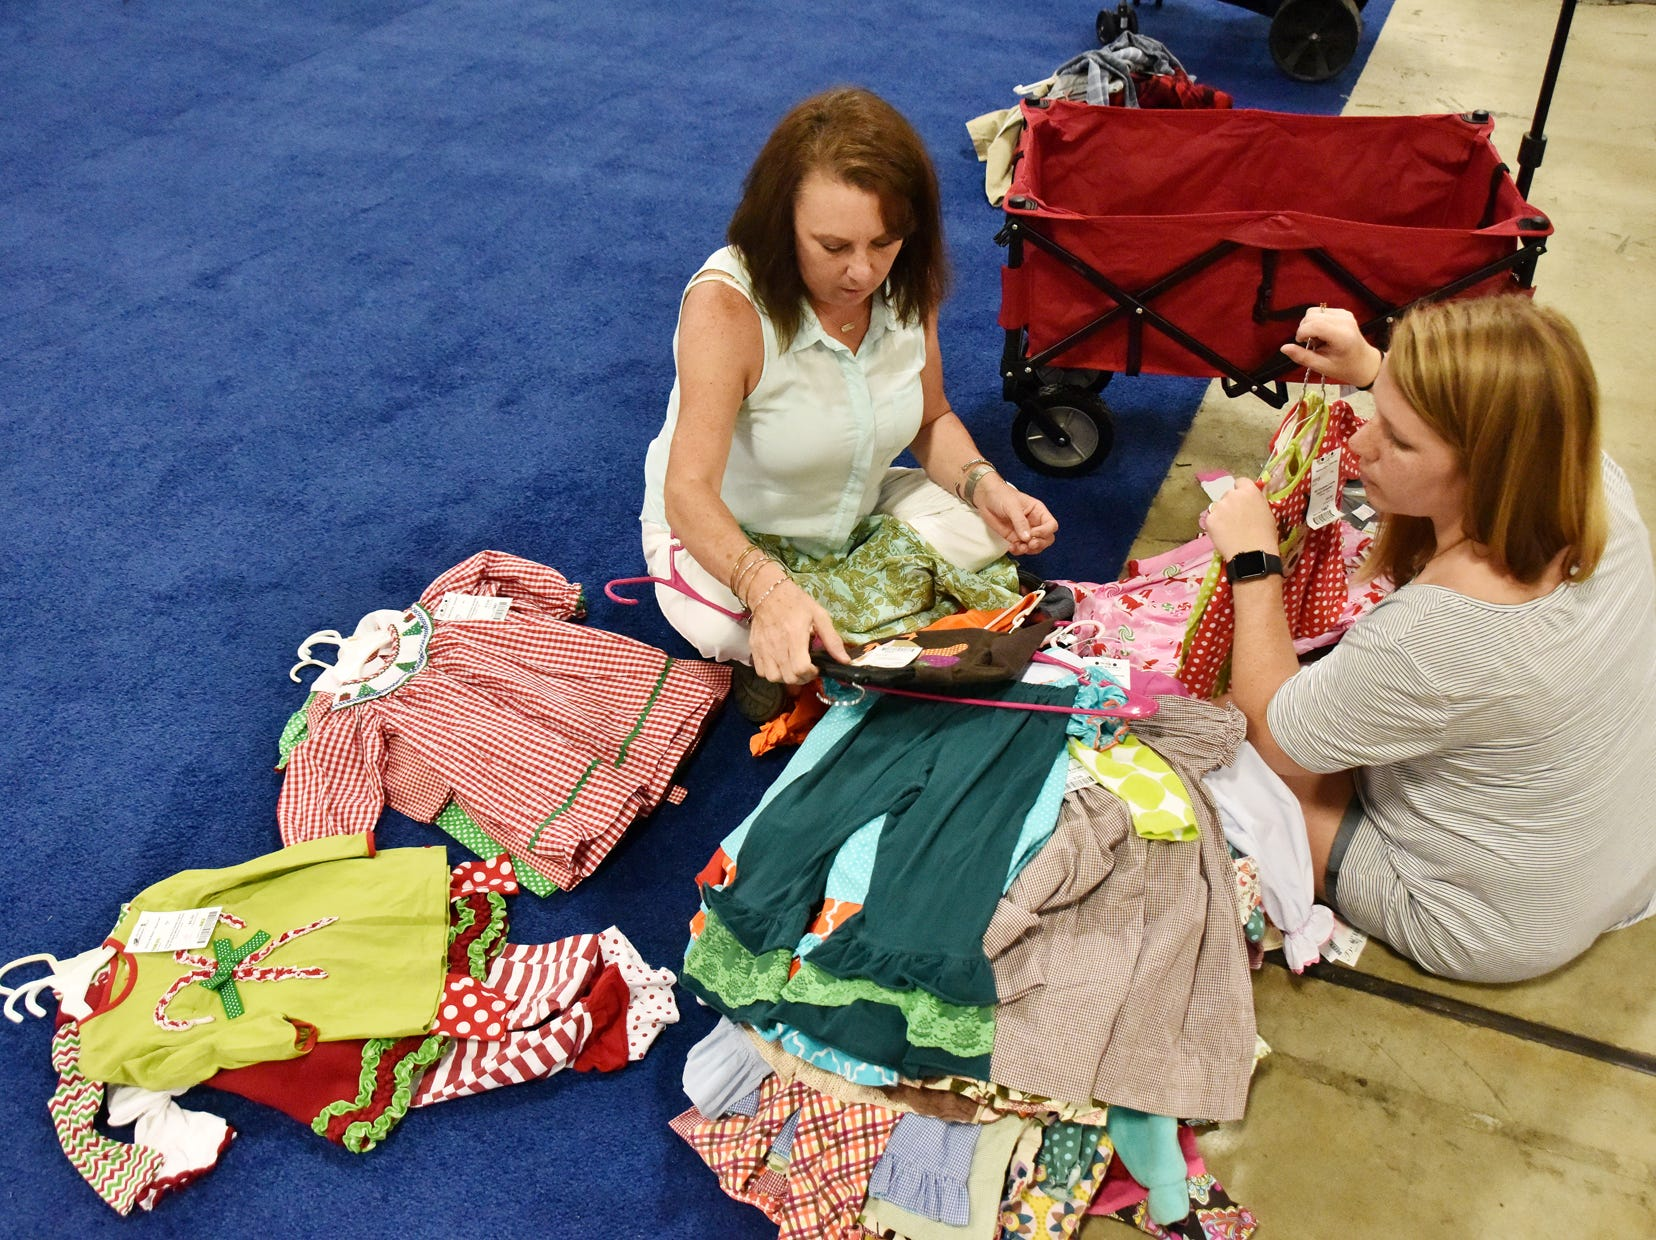 Chelsea Roberts, right, and Rebecca Jones sort clothes during the Switch-A-Roos children's consignment event at the TD Convention Center in Greenville on Wednesday afternoon, August 8, 2018.